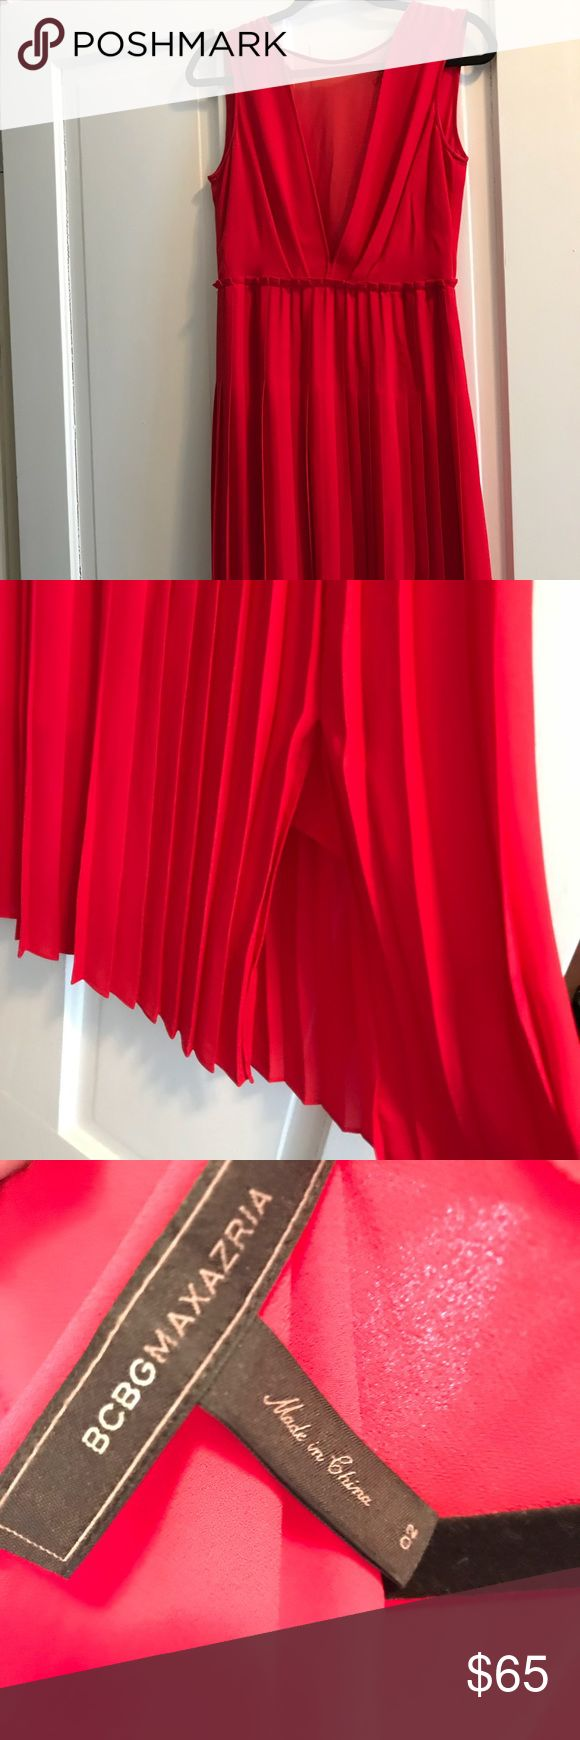 Red BCBG pleated dress Gorgeous red dress from popular BCBG brand. Great condition - with see through top and pleated skirt detail. Slit on left side for a fun peekaboo effect. Great go-to dress for any event. BCBG Dresses Midi